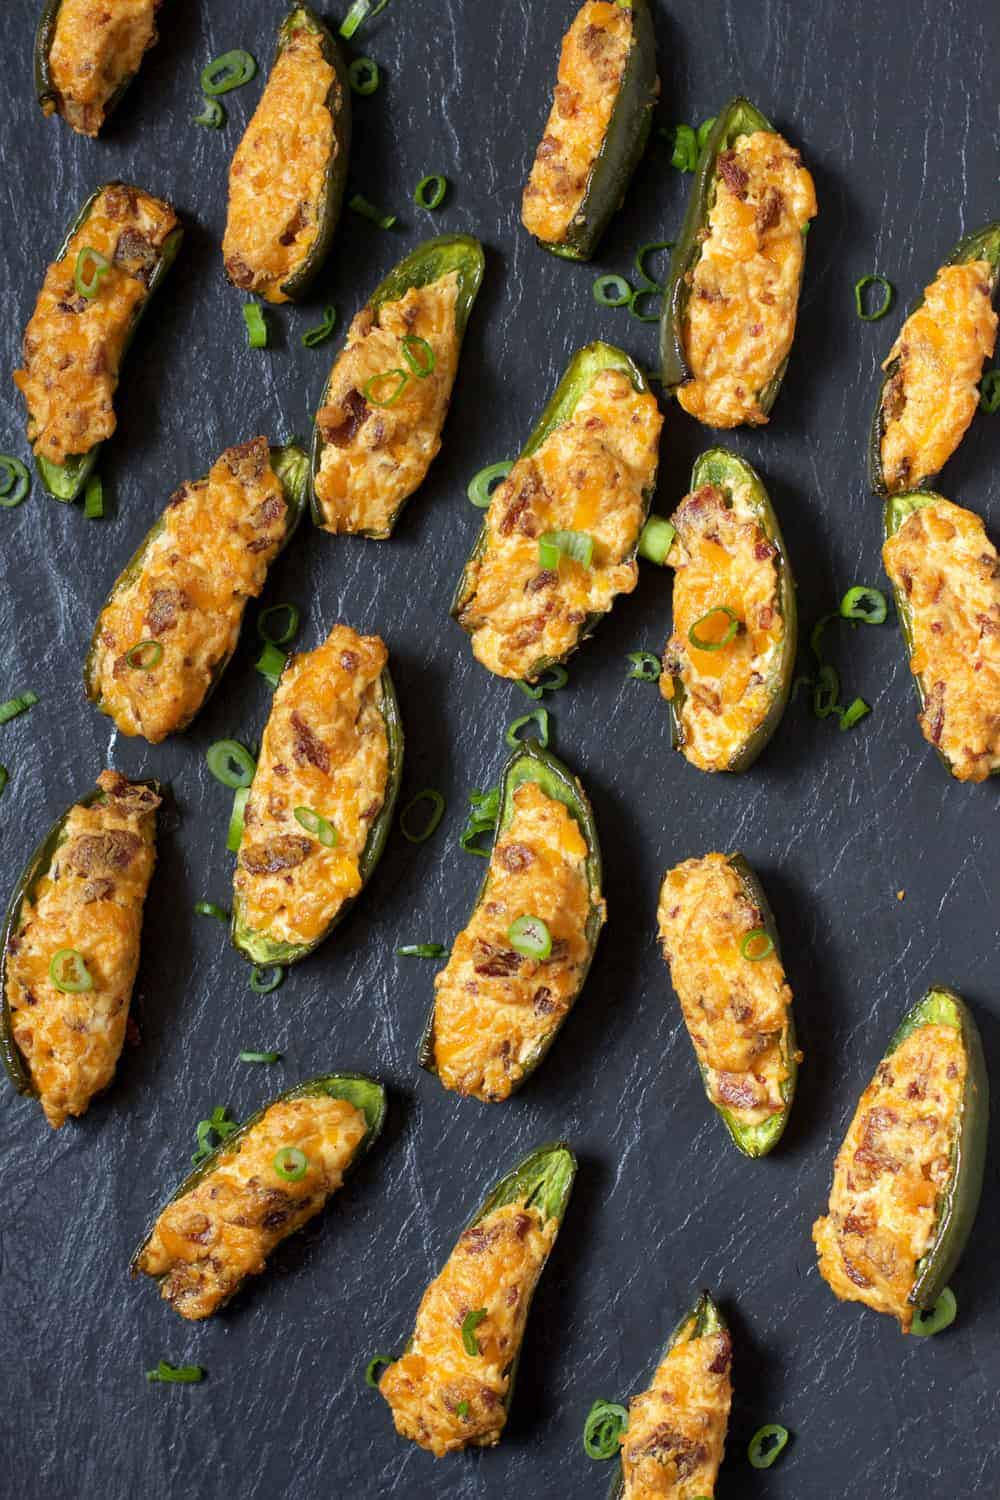 Smoked Jalapeño Poppers with Smoked Bacon. An awesome appetizer for Super Bowl made with crispy smoked bacon, cream cheese and cheddar cheese. Creamy, crunchy, a touch spicy and 100% delicious!